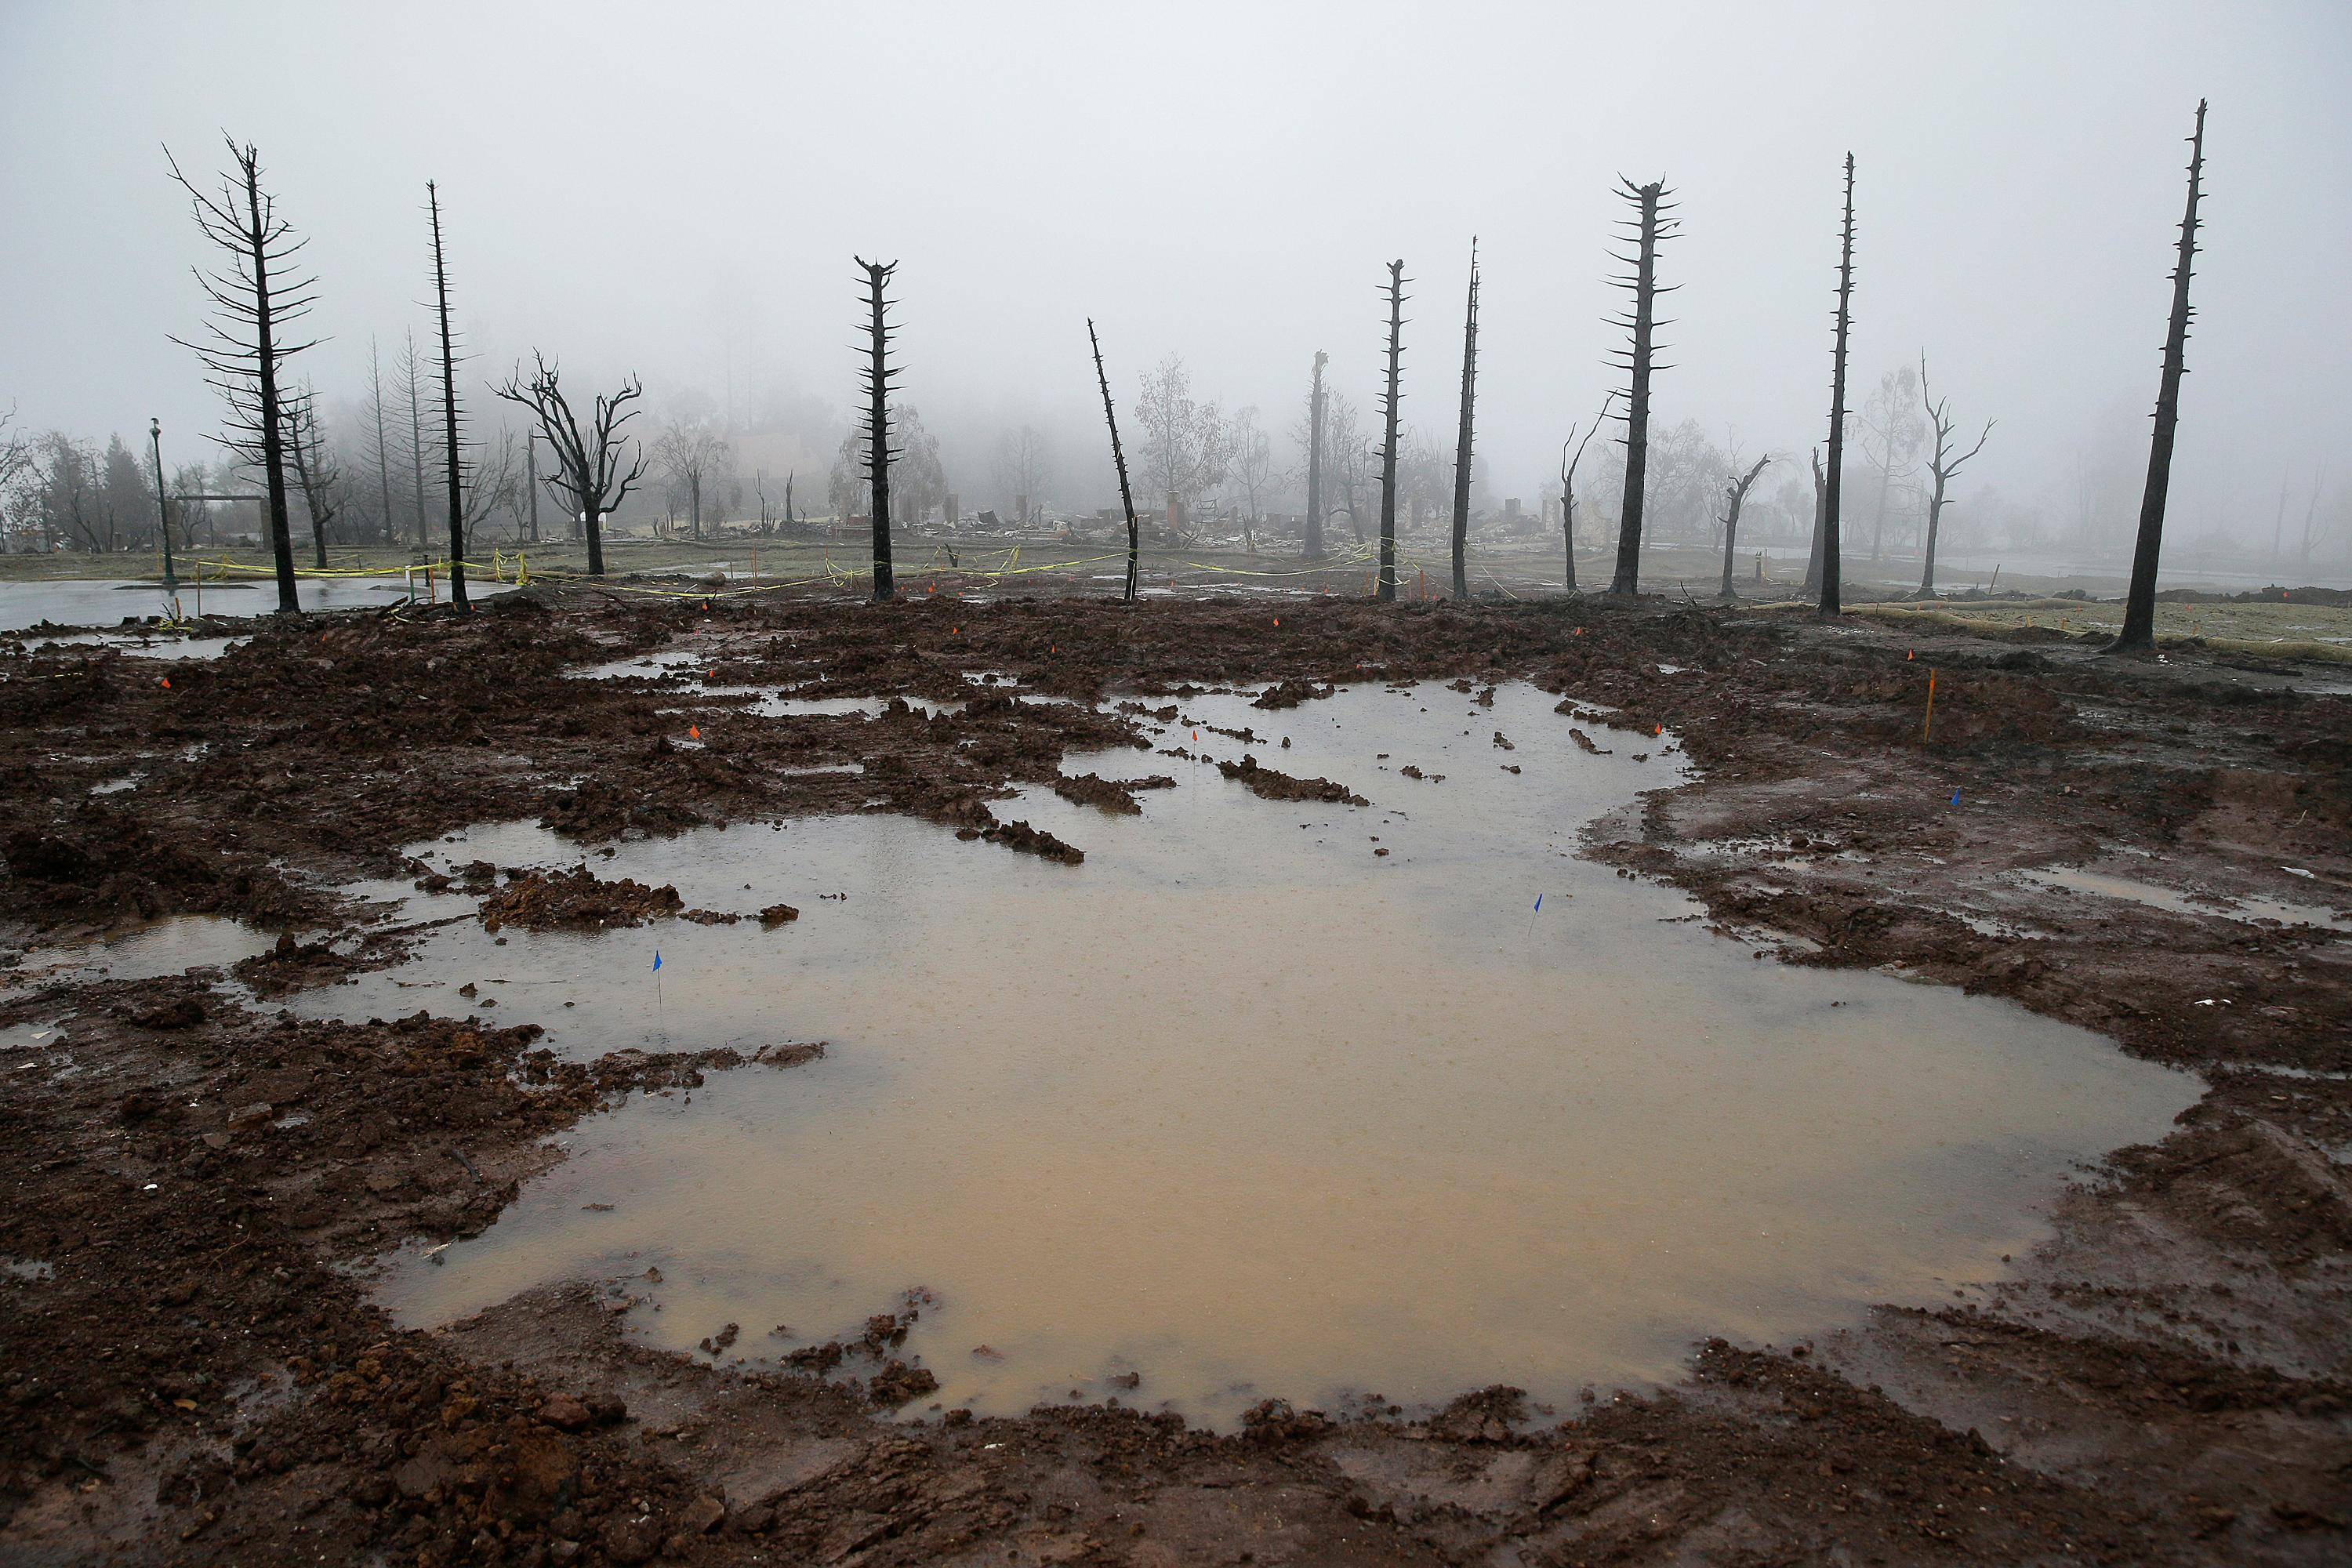 Rain water pools where a Fountaingrove neighborhood home once stood Monday, Jan. 8, 2018, in Santa Rosa, Calif. Storms brought rain to California on Monday and increased the risk of mudslides in fire-ravaged communities in devastated northern wine country and authorities to order evacuations farther south for towns below hillsides burned by the state's largest-ever wildfire. (AP Photo/Eric Risberg)